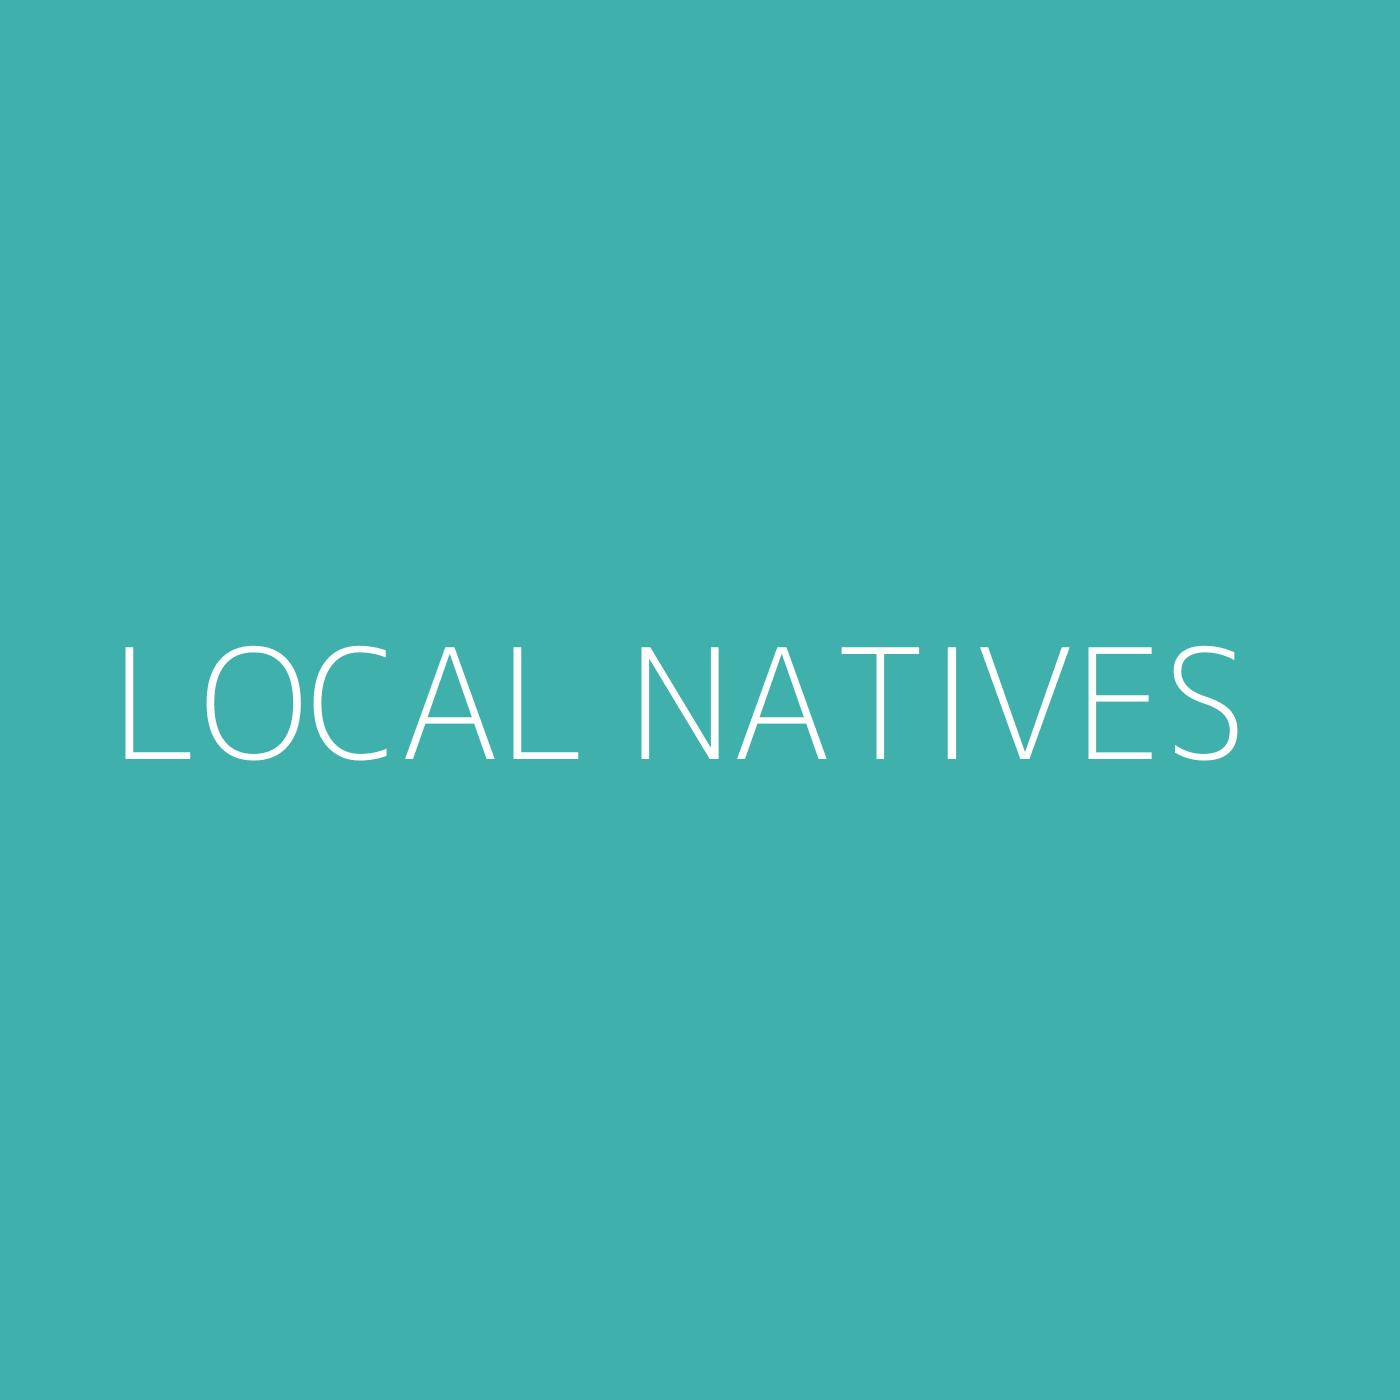 Local Natives Playlist Artwork